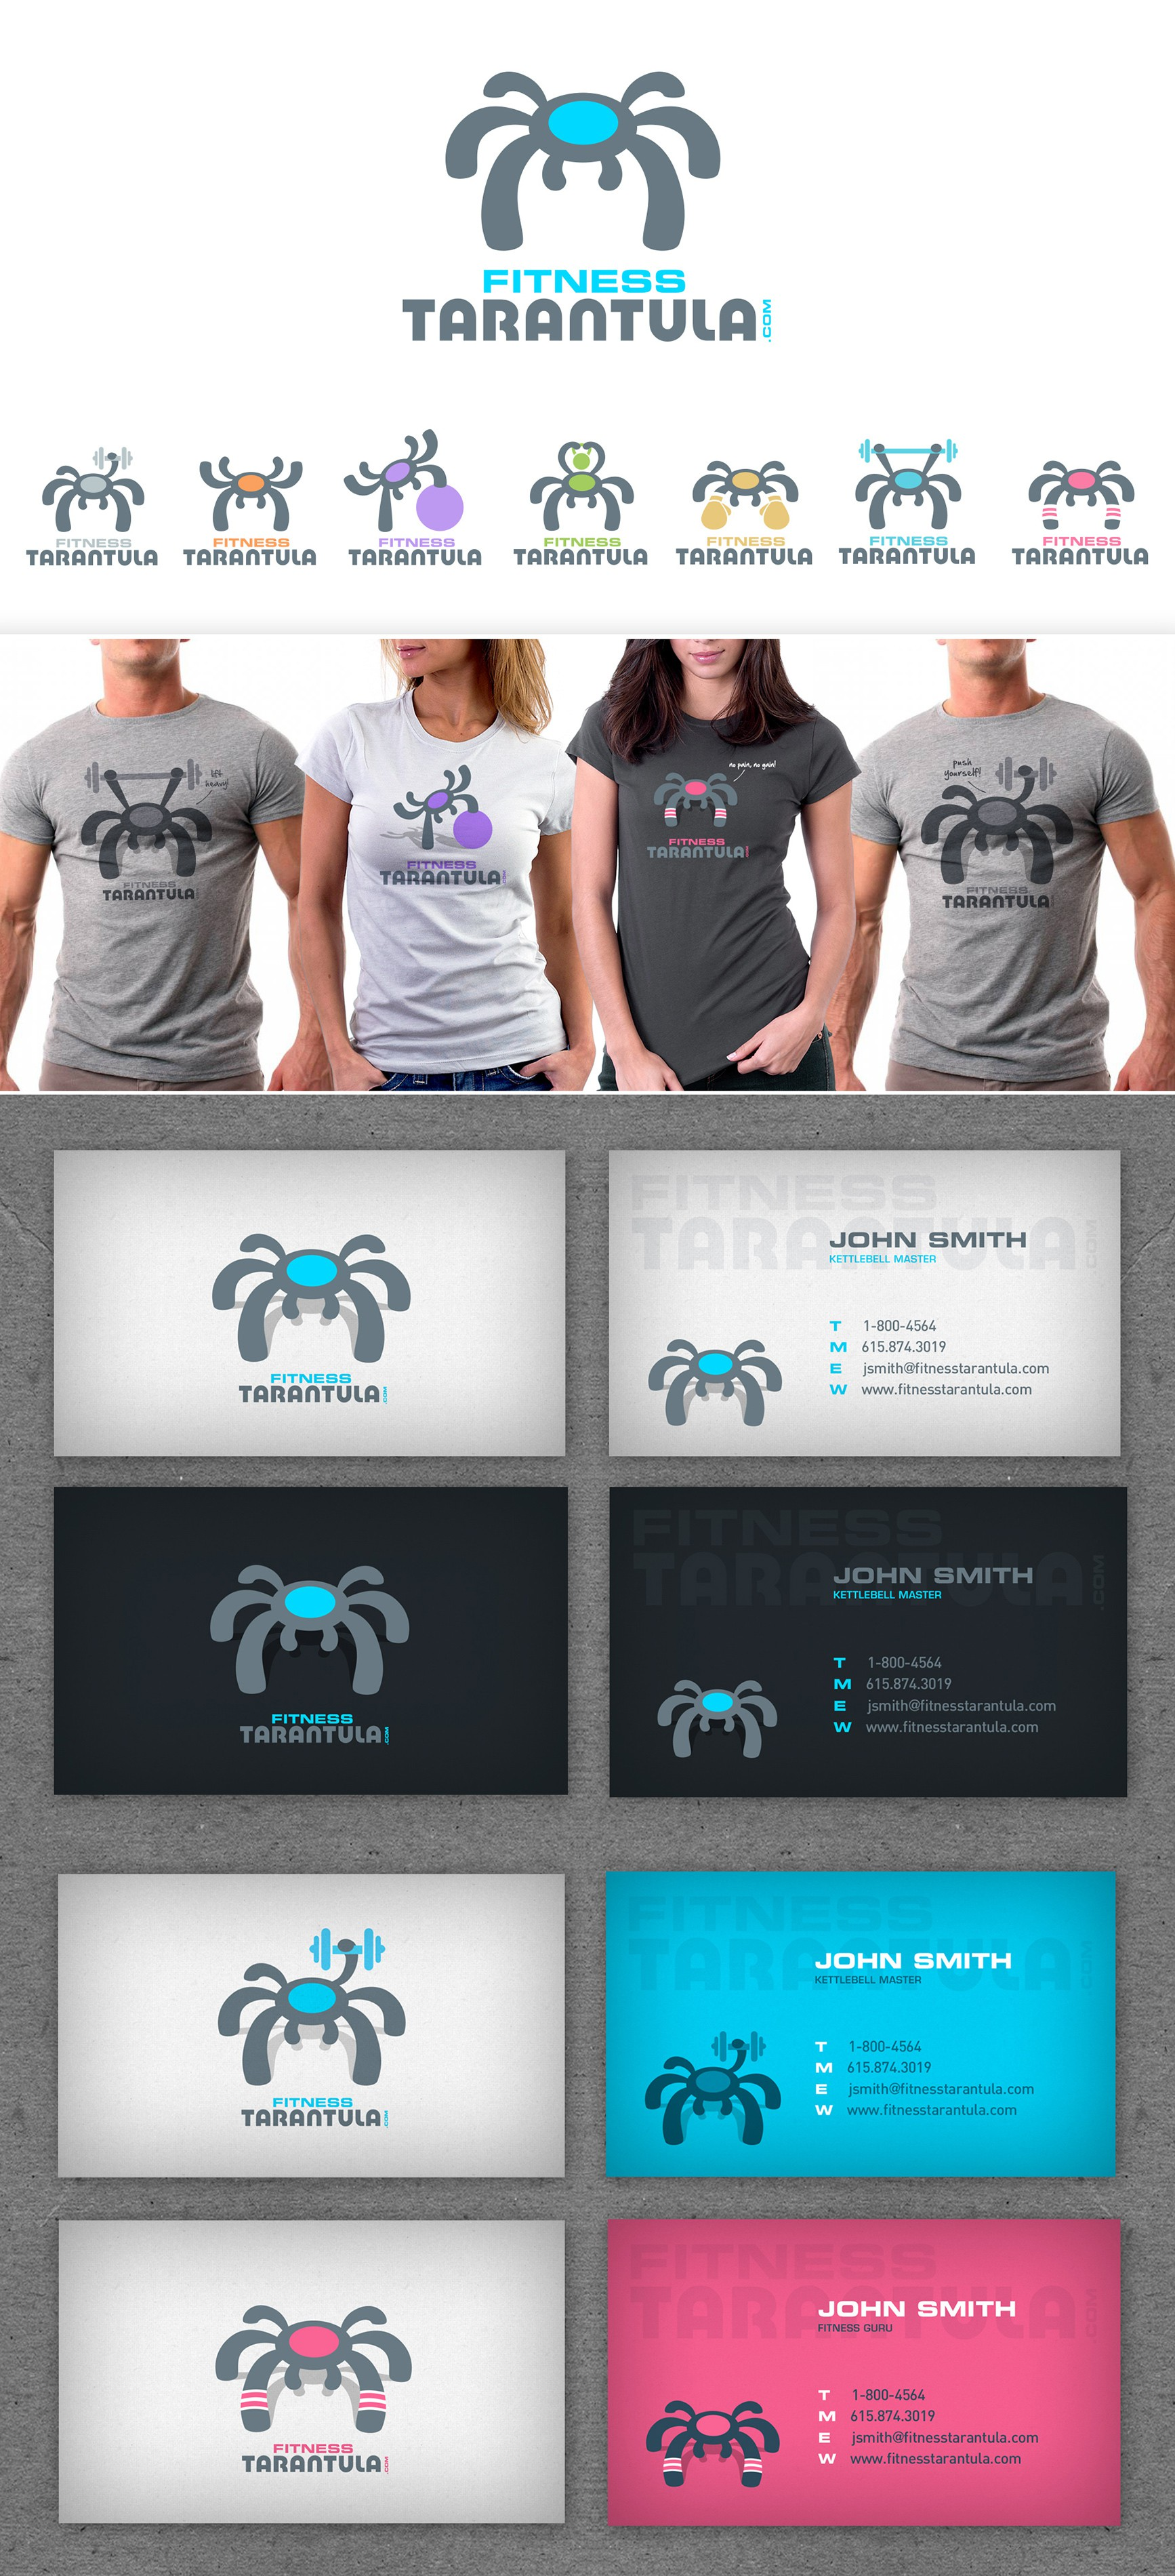 Help Fitness Tarantula with a new logo and business card